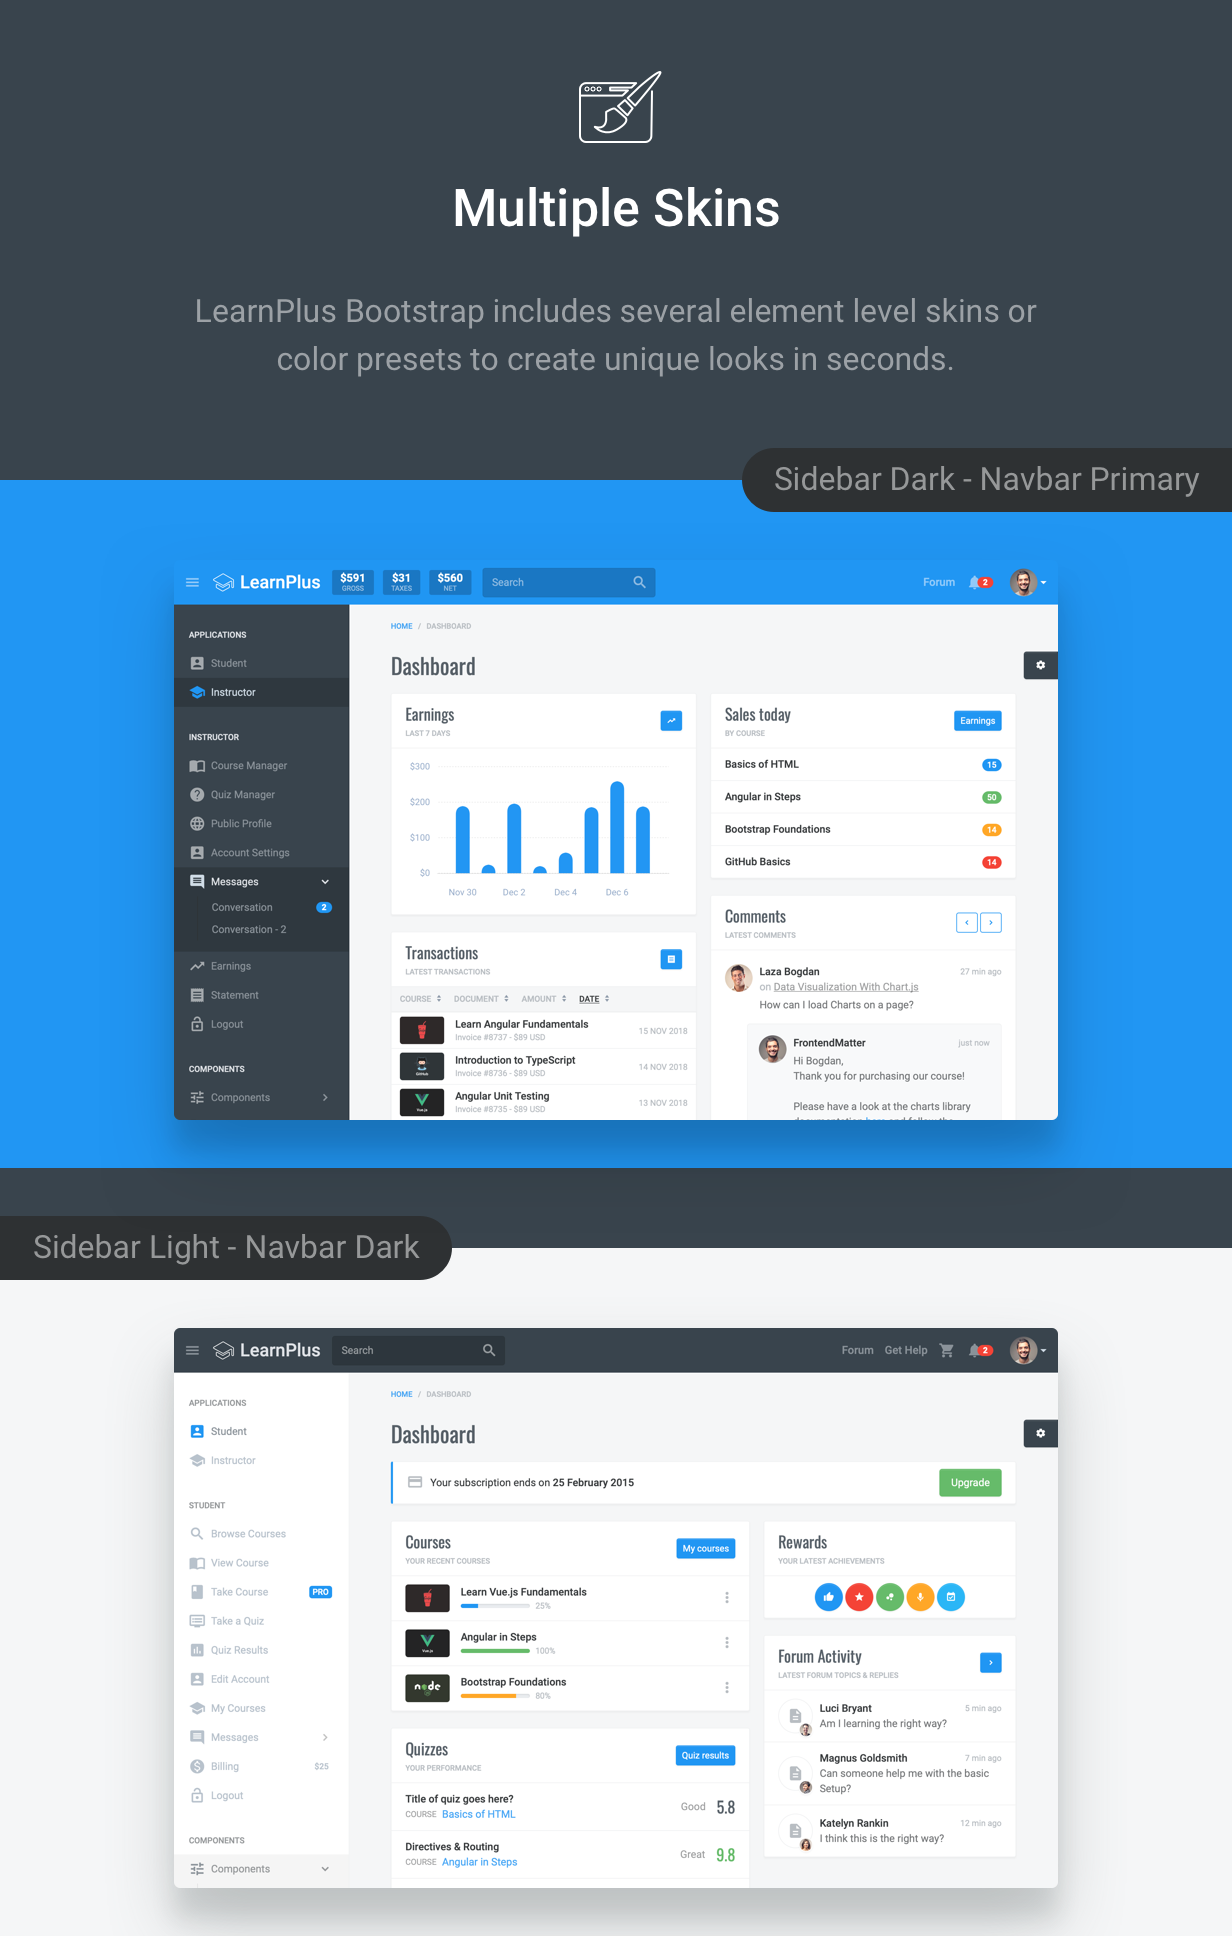 LearnPlus Bootstrap - Learning Application - includes multiple element skins